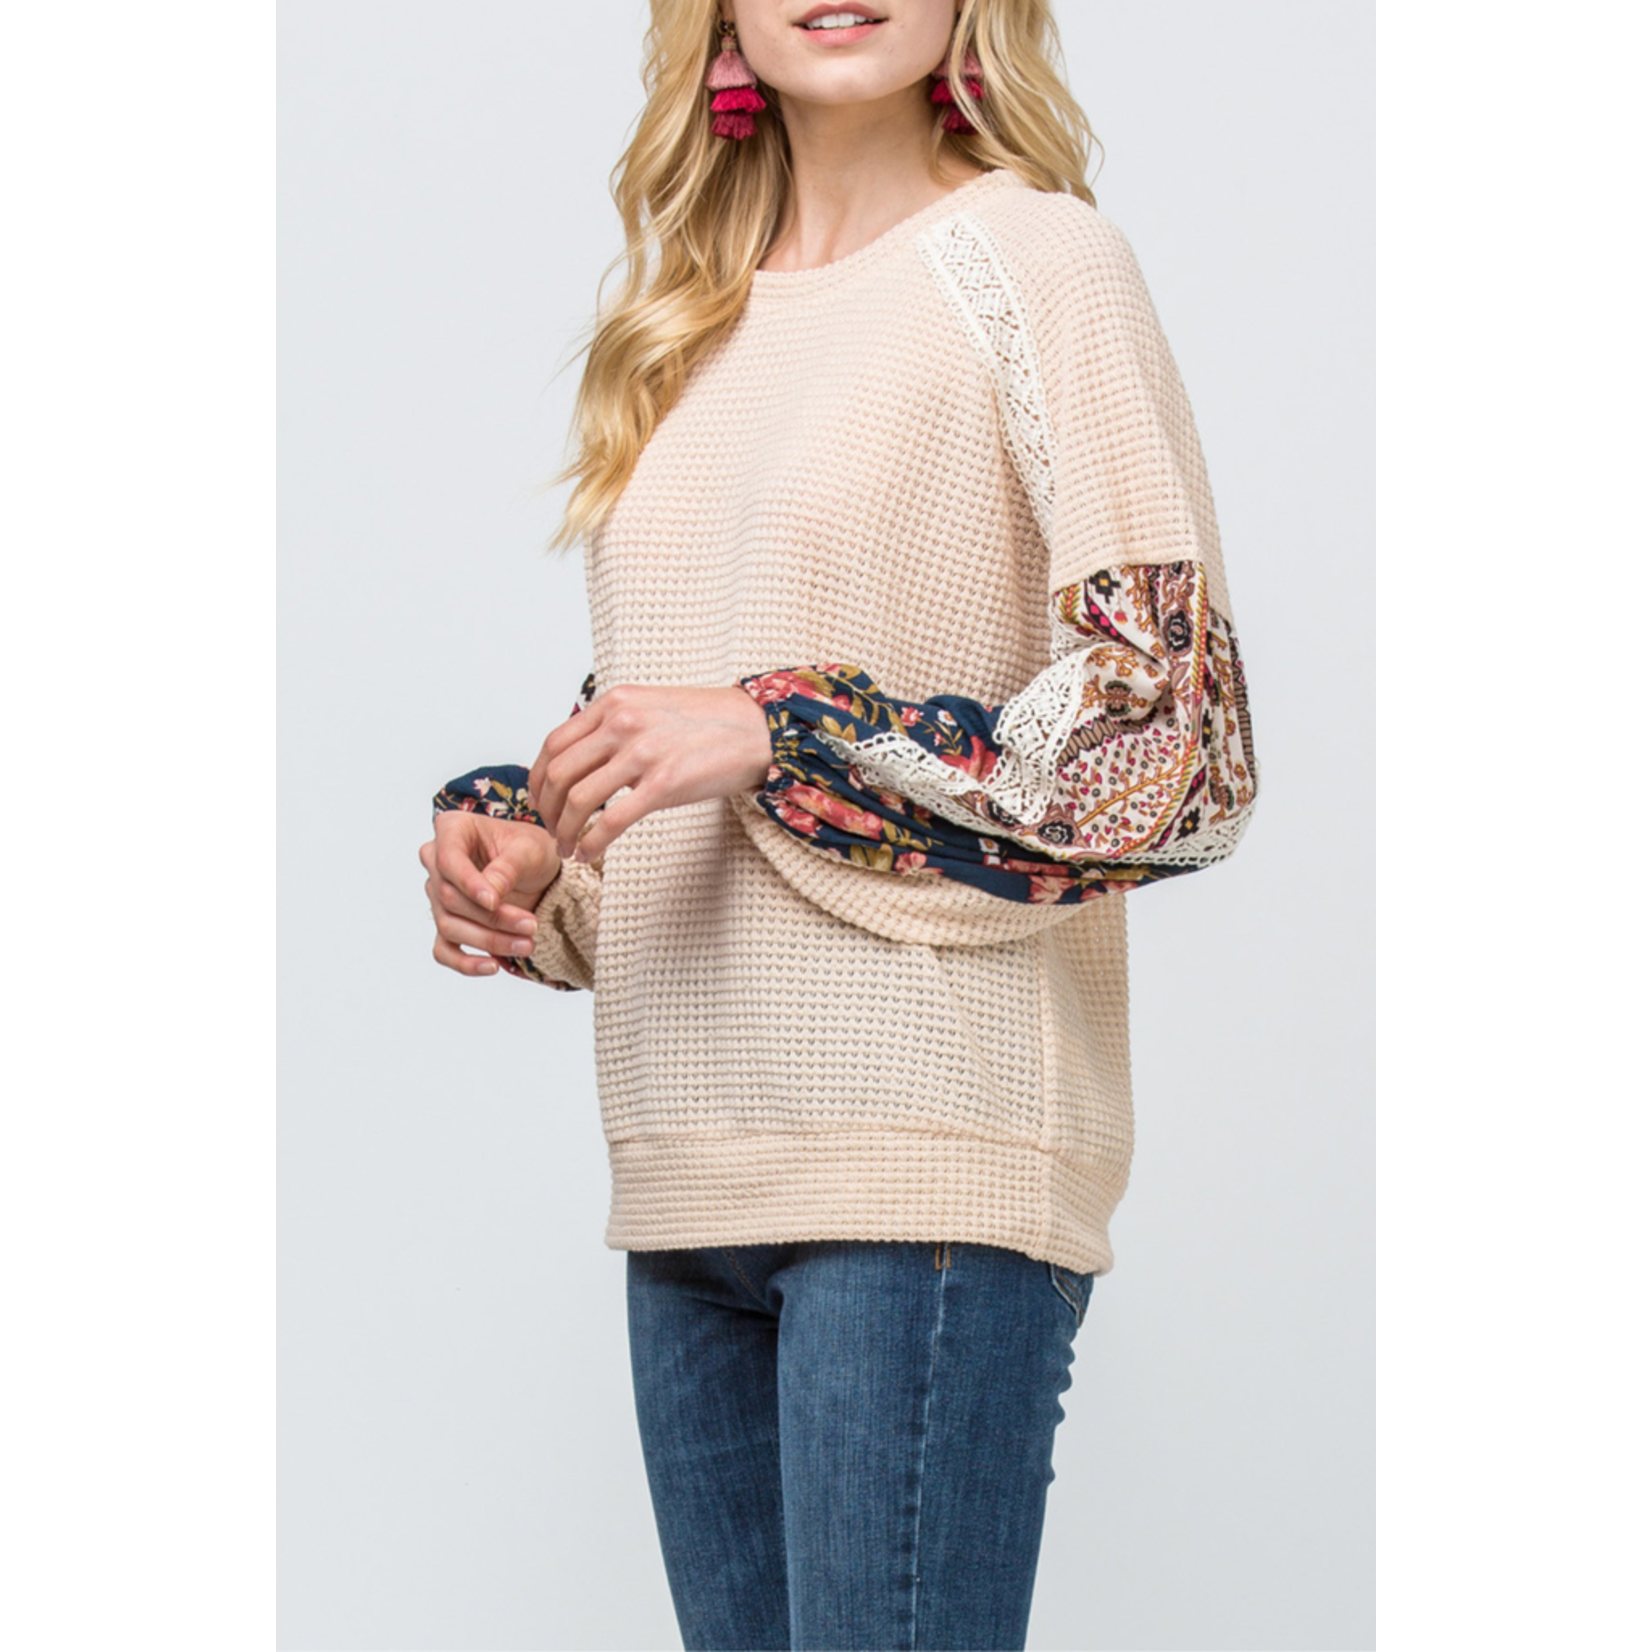 Entro Waffle knit Contrast Top, sale item, Was $55